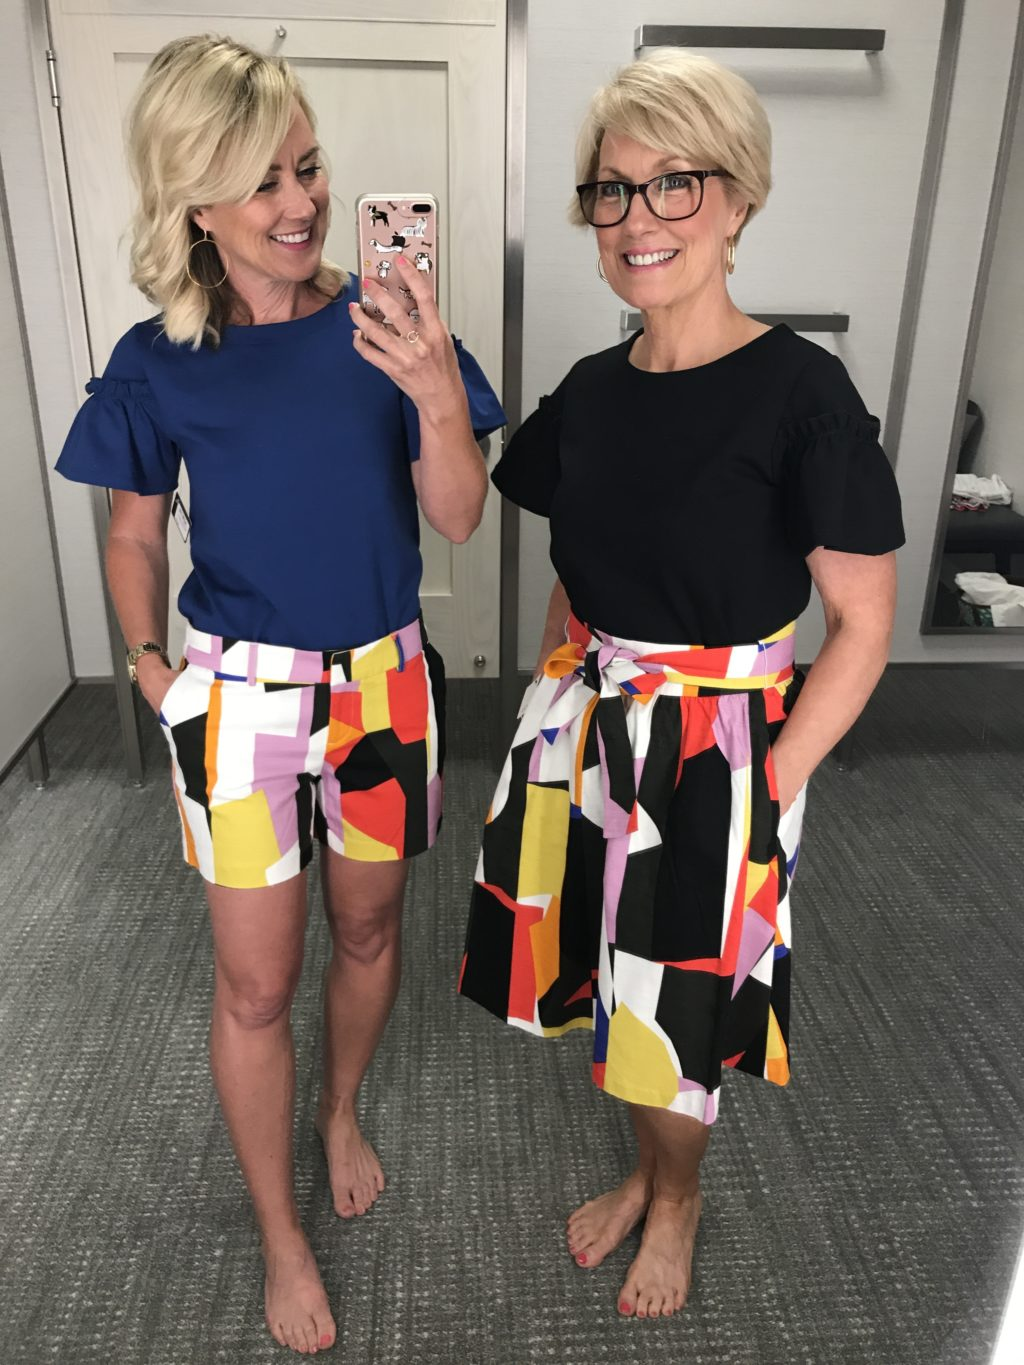 nordstrom graphic shorts skirts 2